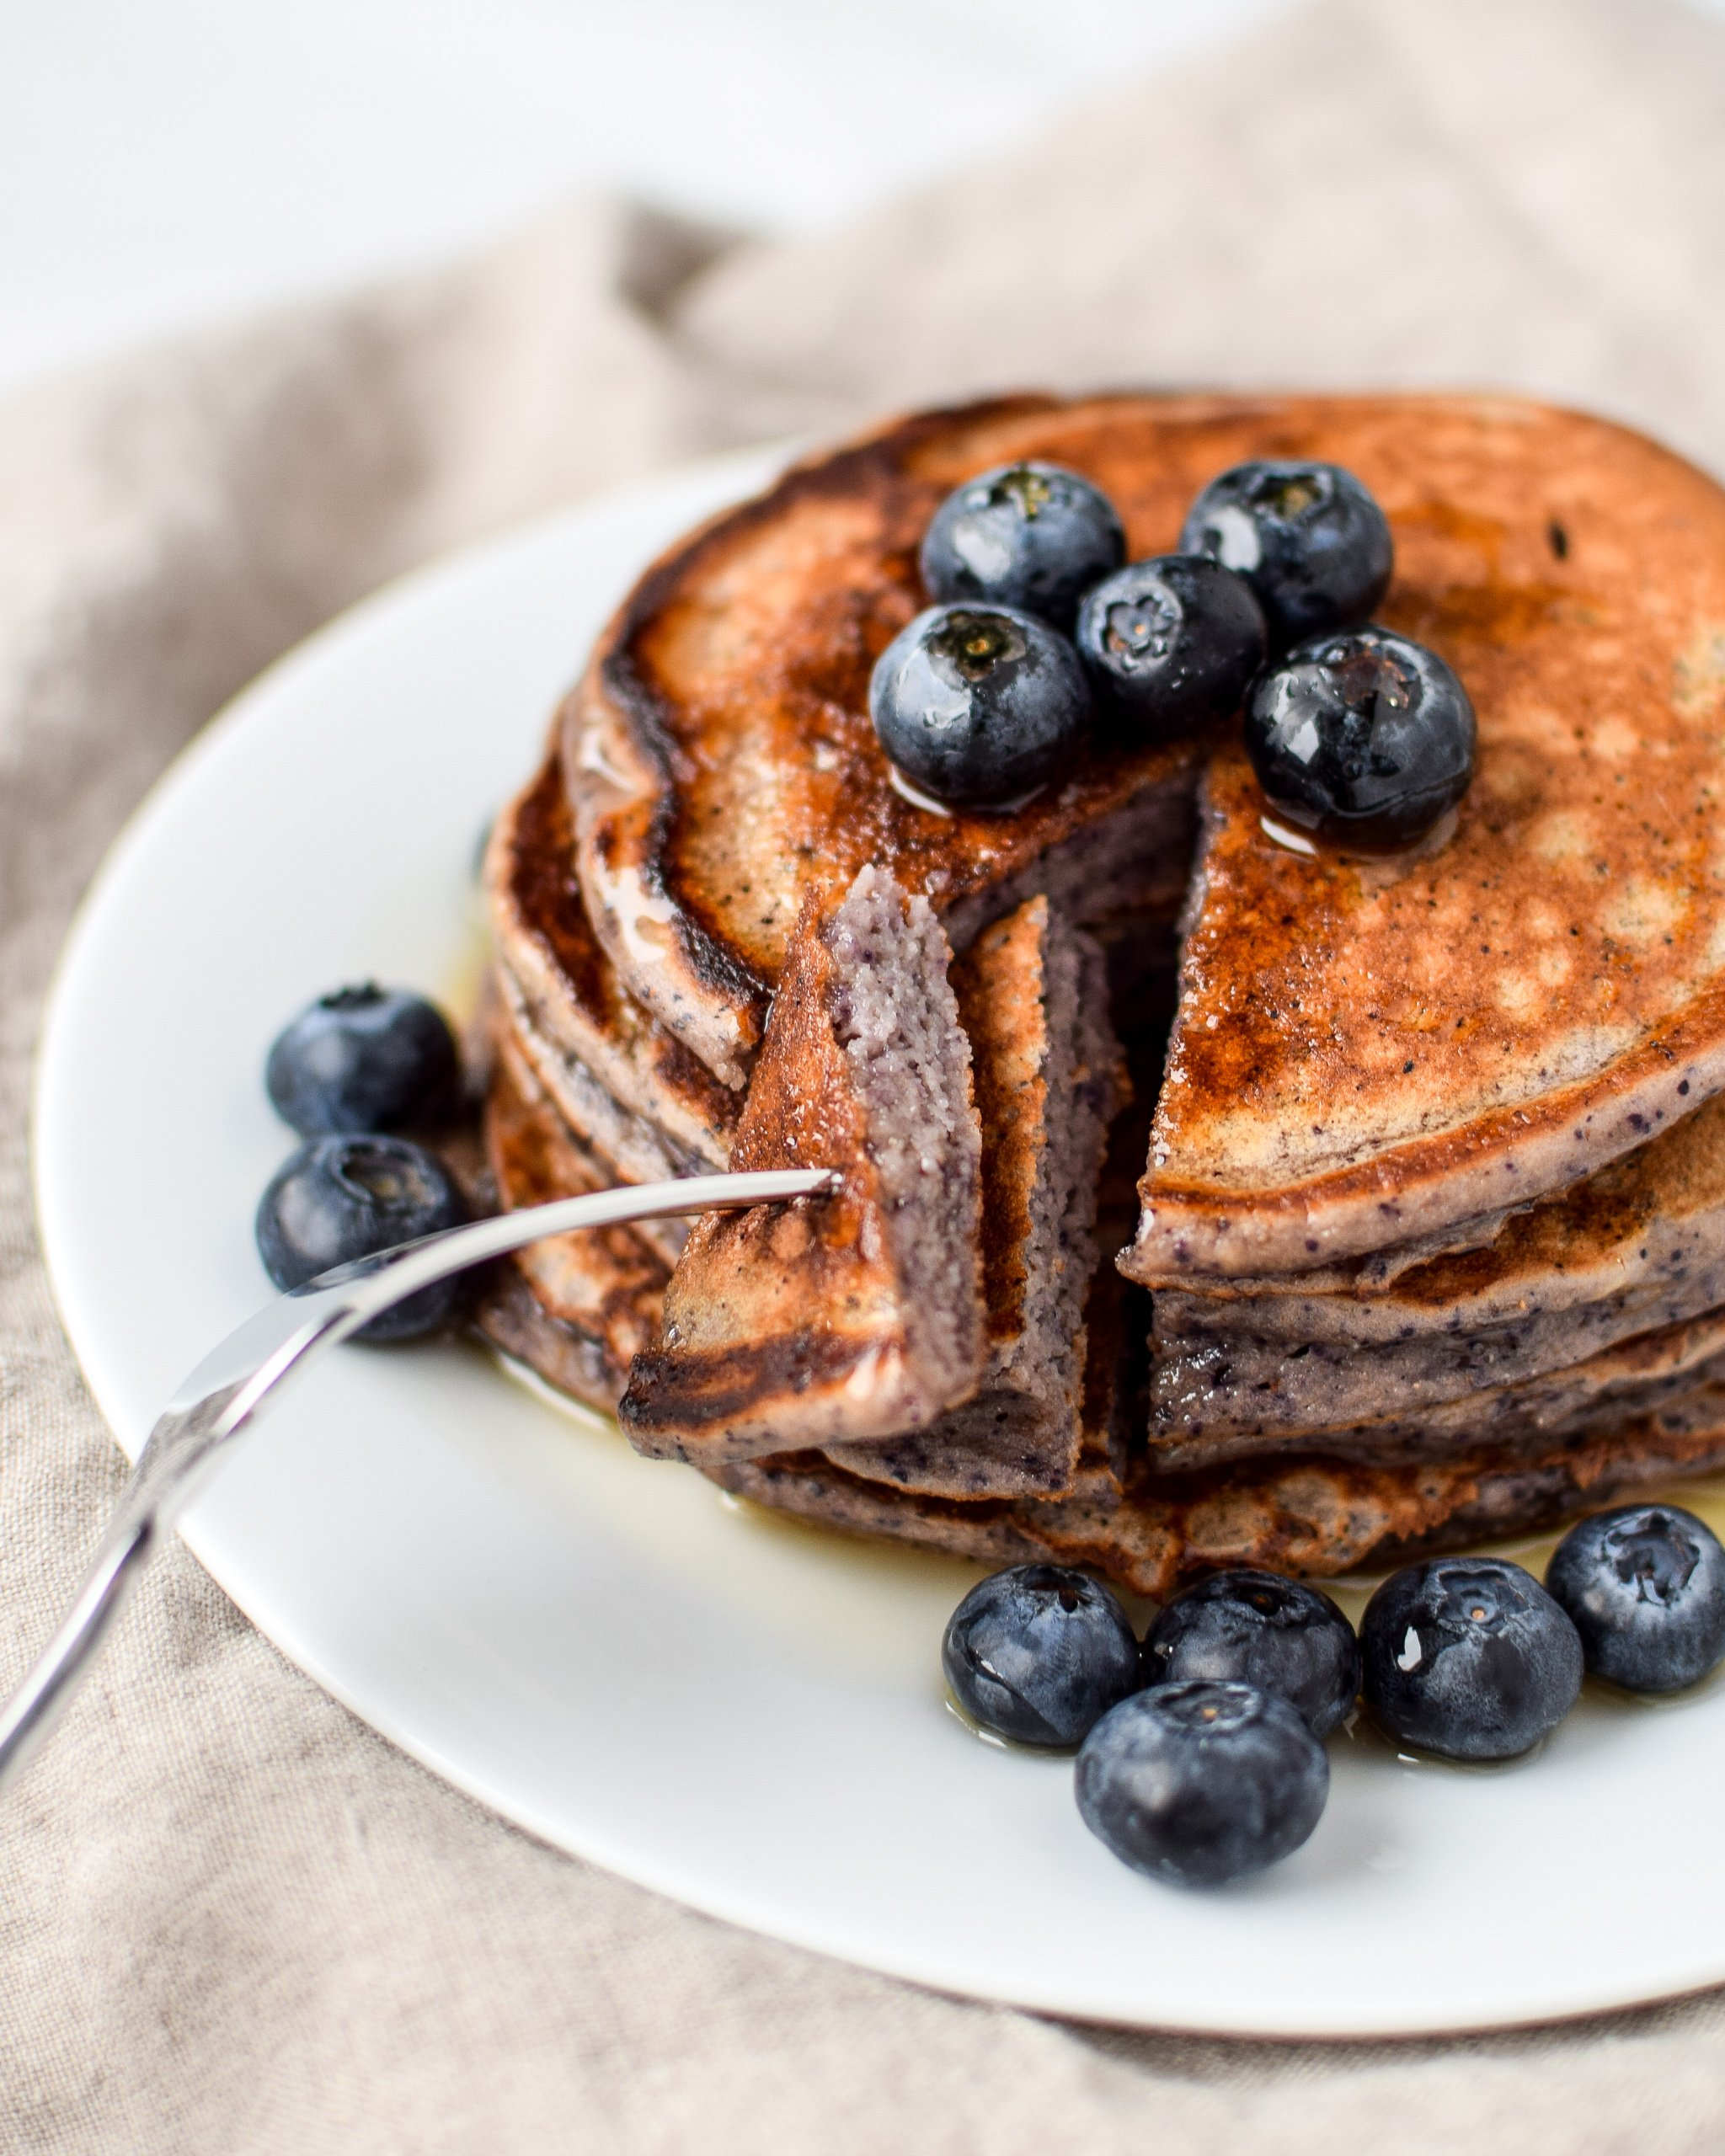 Lemon Poppy Seed Blueberry Protein Pancakes - Project Meal Plan